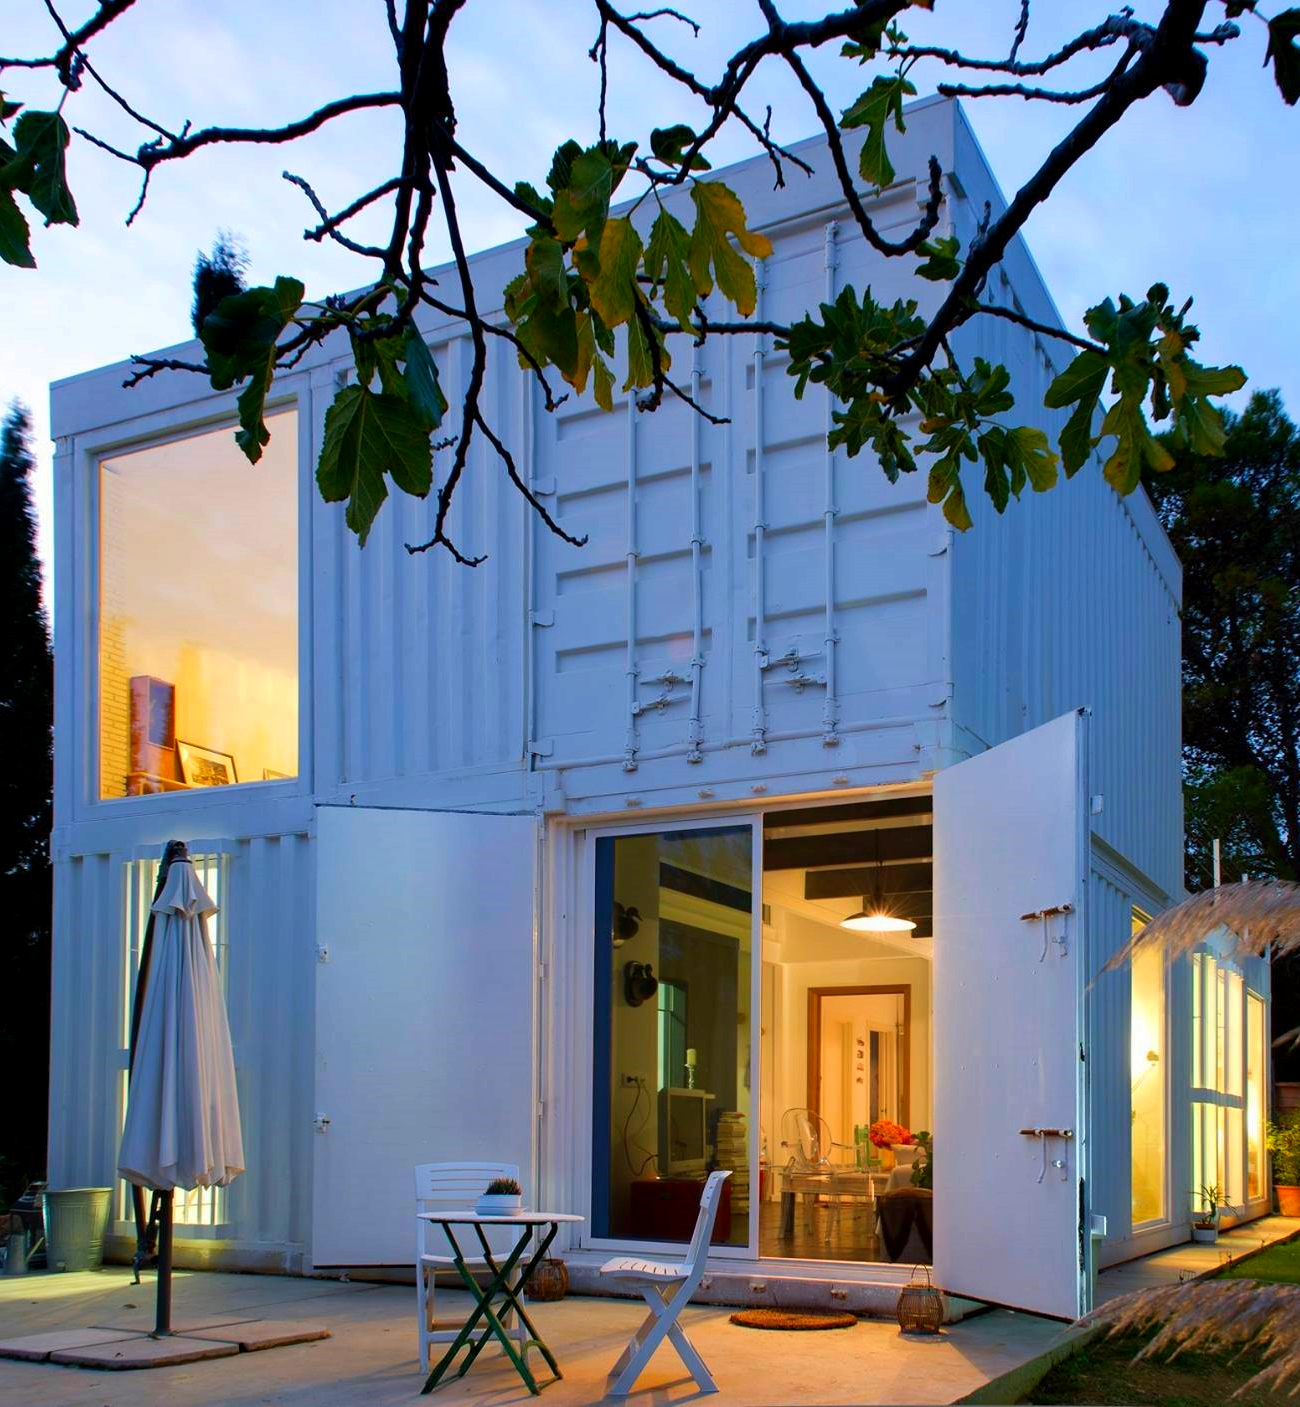 Shipping Container Homes & Buildings: Prefab Modular Two 40 ... on prefab home plans, semi-trailer home plans, conex container homes plans, storage trailer home plans, three story home plans, sip home plans, 5 bed home plans, warehouse home plans, barn home plans, conex box home plans, shipping containers into homes, steel home plans, shipping crate homes plans, 28 x 40 home plans, large garage home plans, off grid home plans, classic home plans, 24x40 home plans, v-shaped home plans, shipping containers for homes,